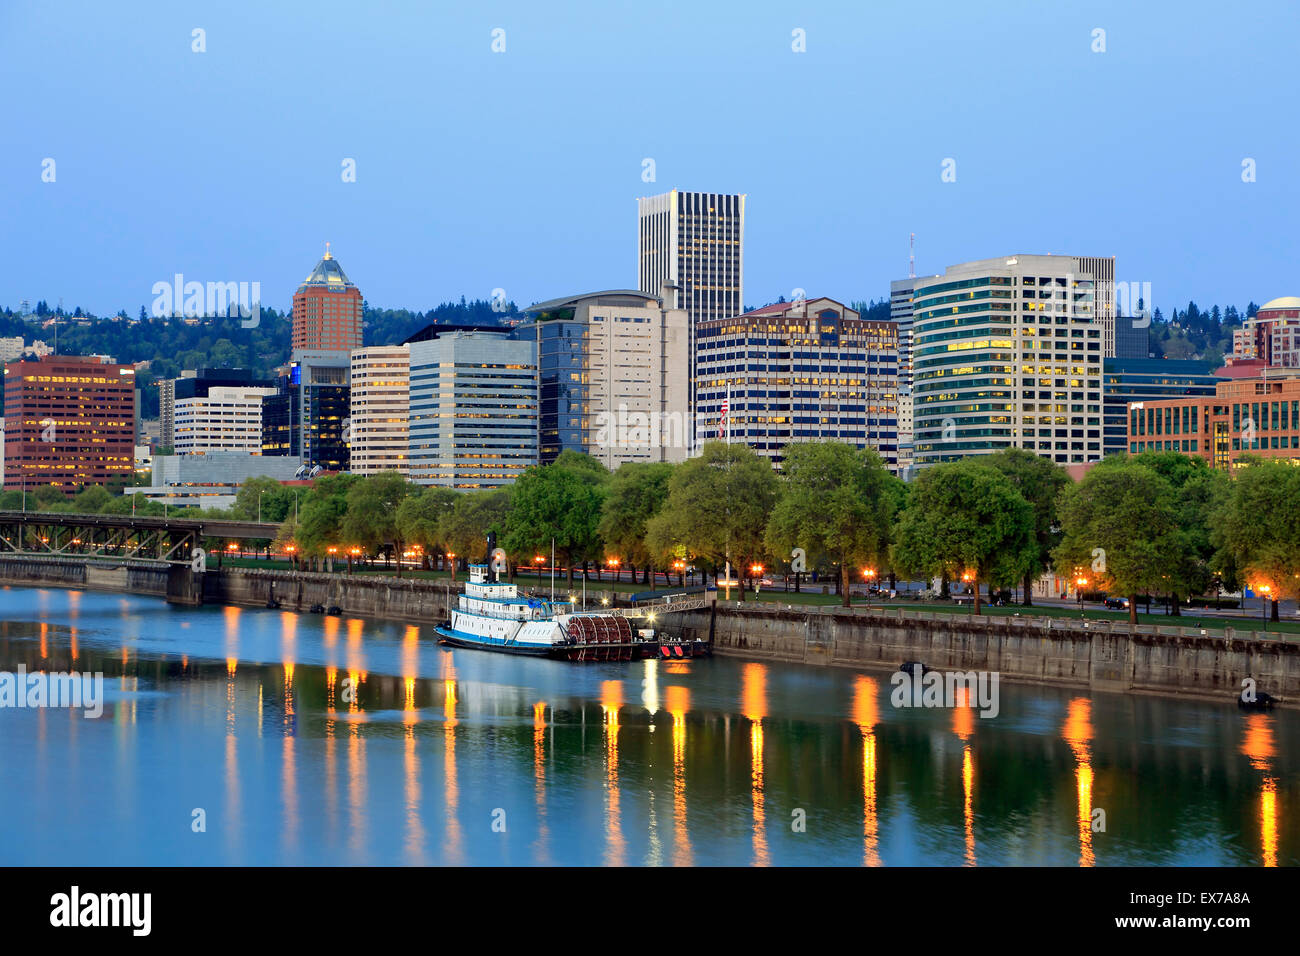 Skyline of Portland and Willamette River, Portland, Oregon USA - Stock Image